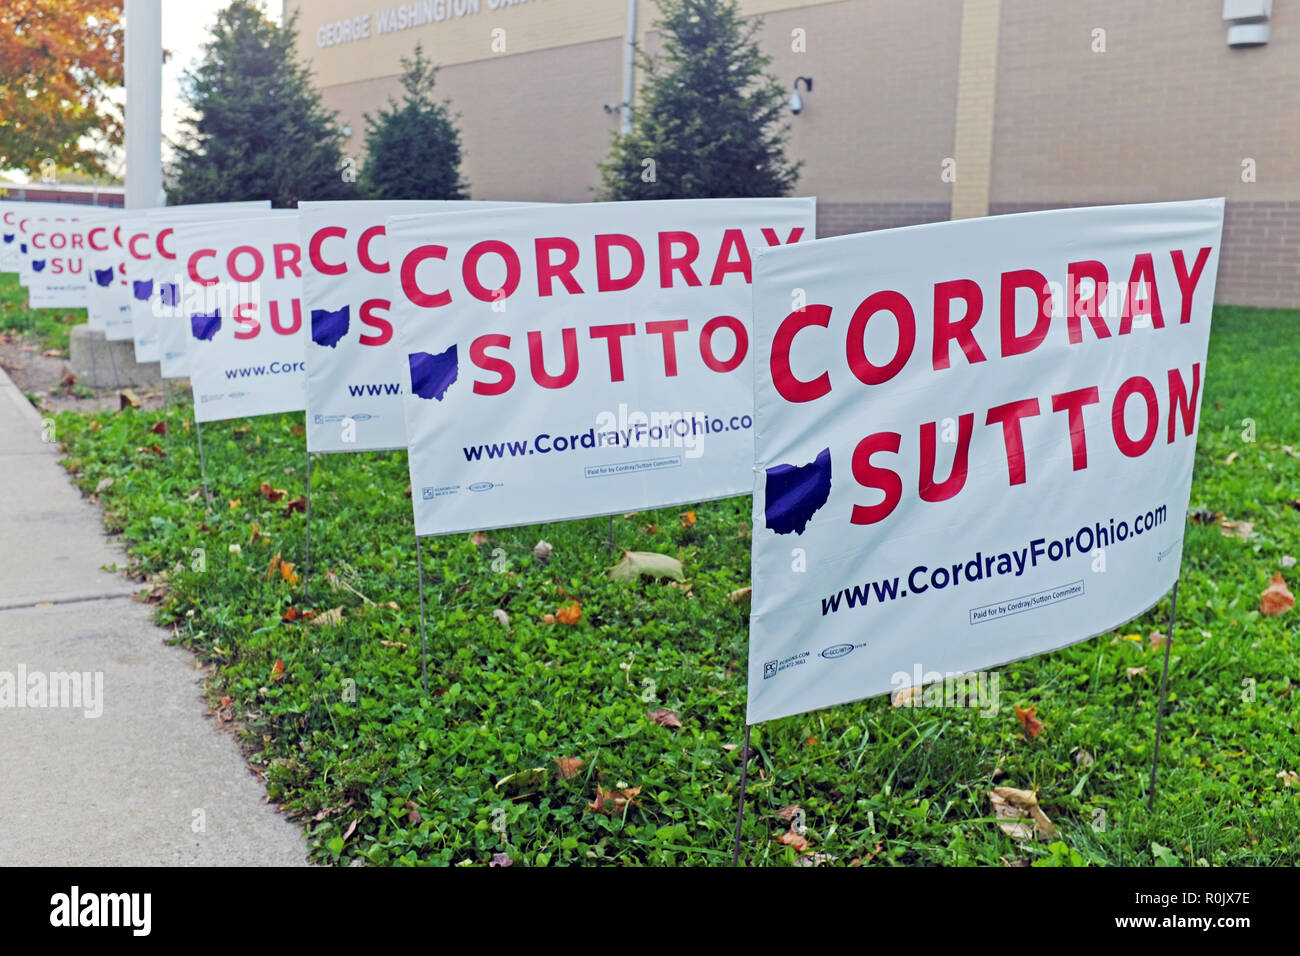 Cordray Sutton political signs are posted outside George Carver Washington School in Cleveland, Ohio, USA where a rally for the two occurred. - Stock Image